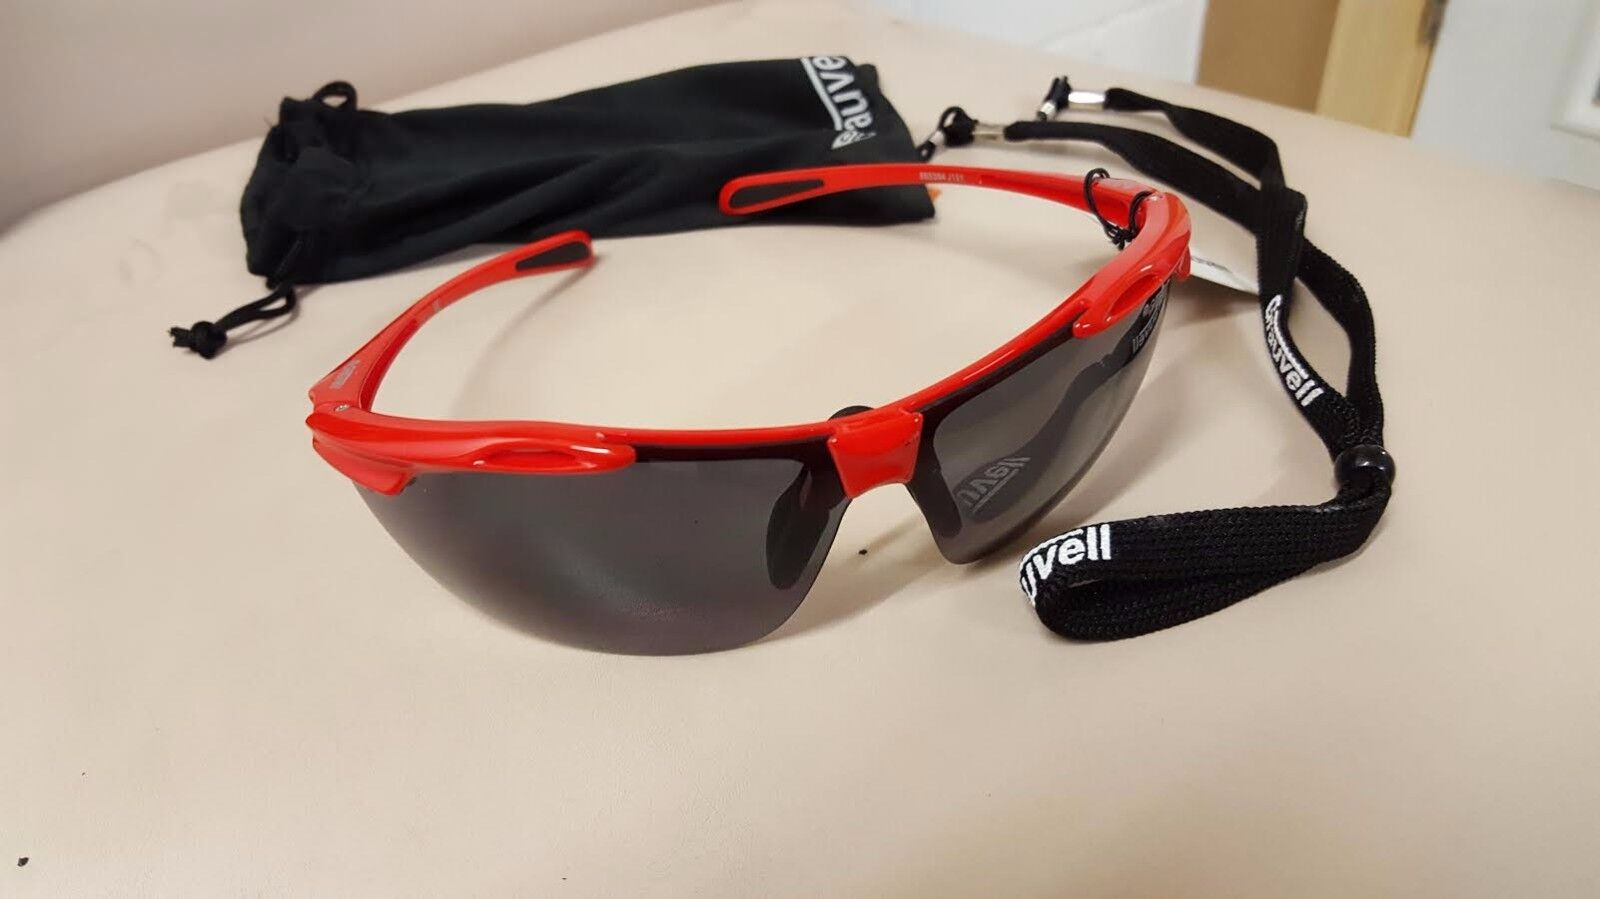 greyvell  carbolite Polarized Sunglasses Compositum carbon frame RRP .99